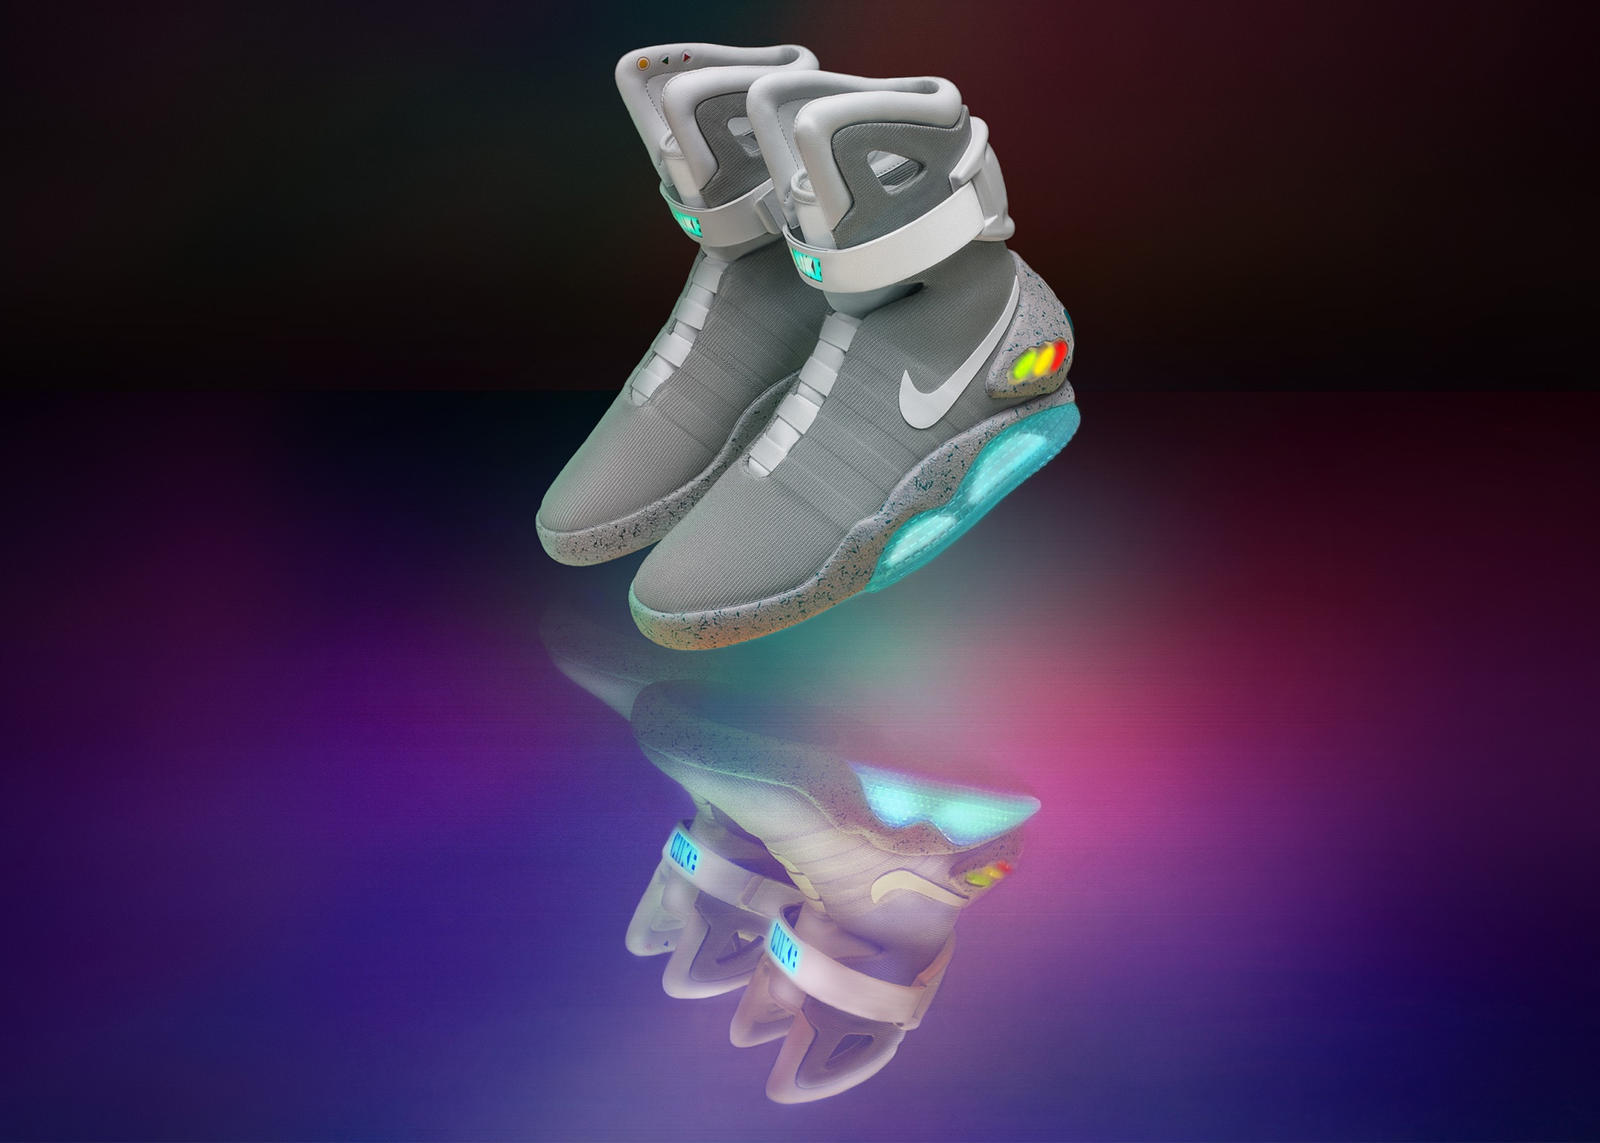 573435ed6e13 How to Get the 2016 Nike Mag - Nike News